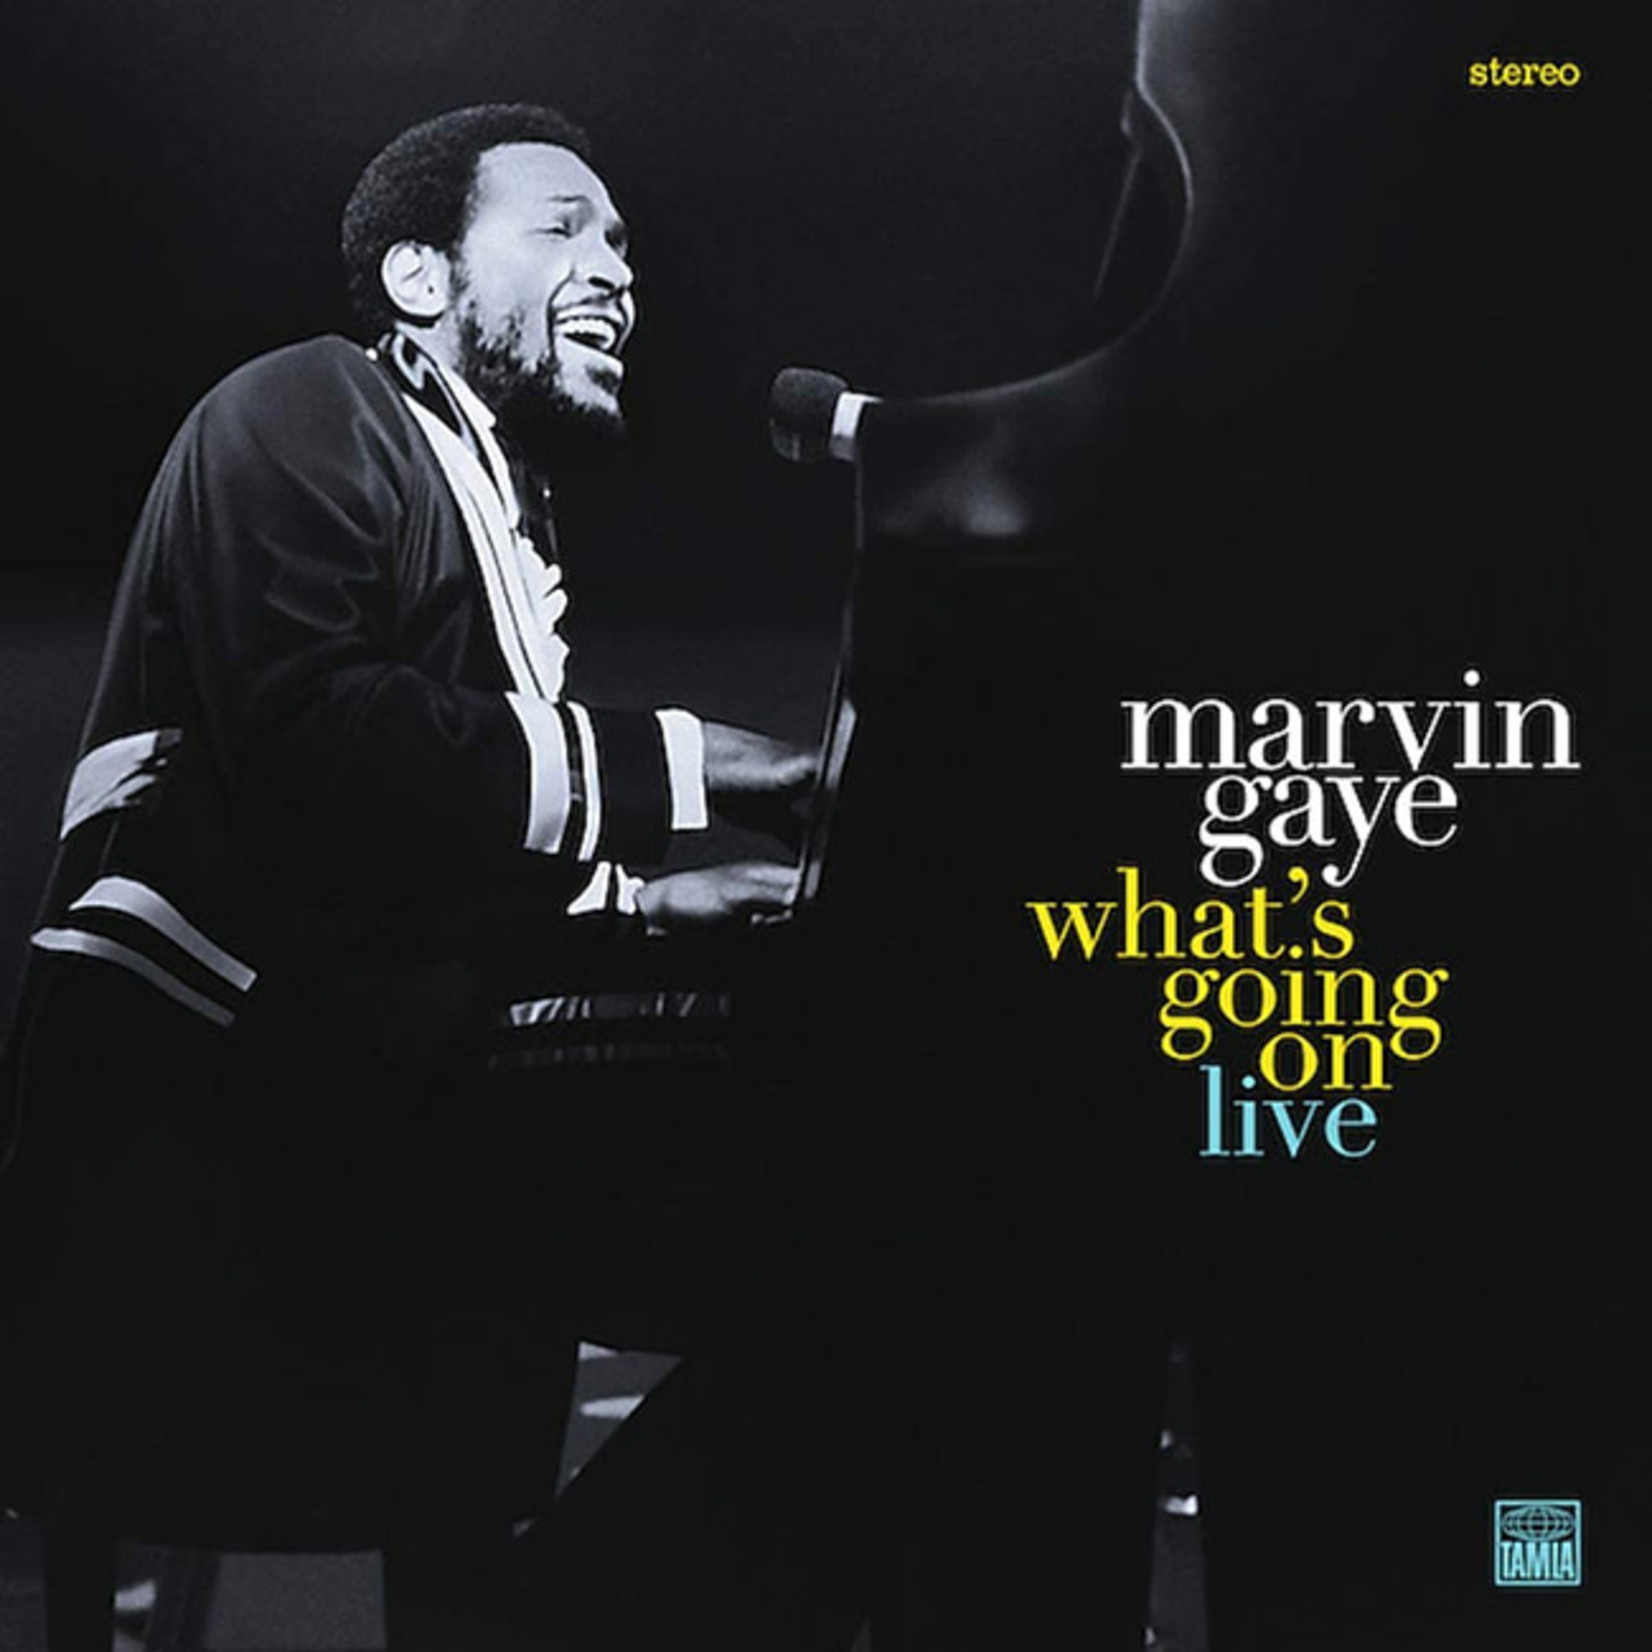 [New] Gaye, Marvin: What's Going On Live (2LP)